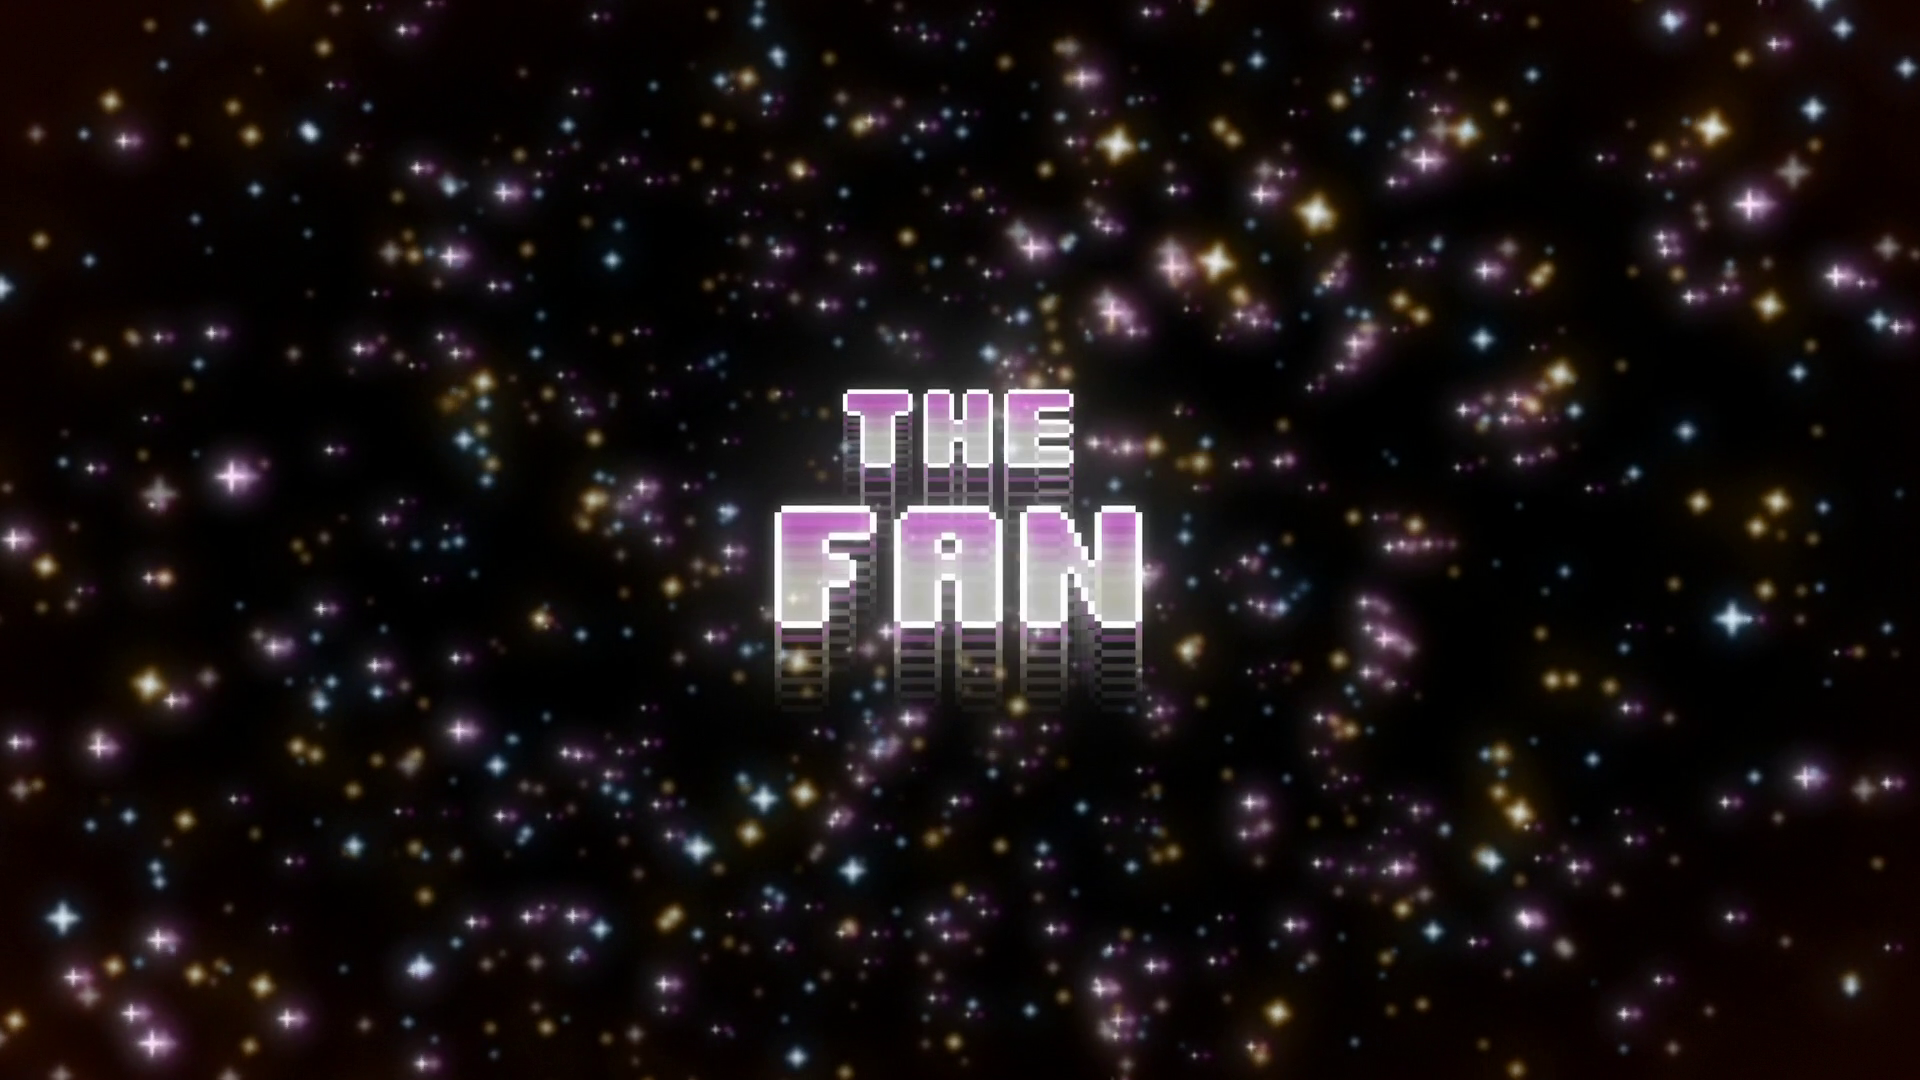 The Amazing World Of Gumball The Tba The Fan - The Amazing ...